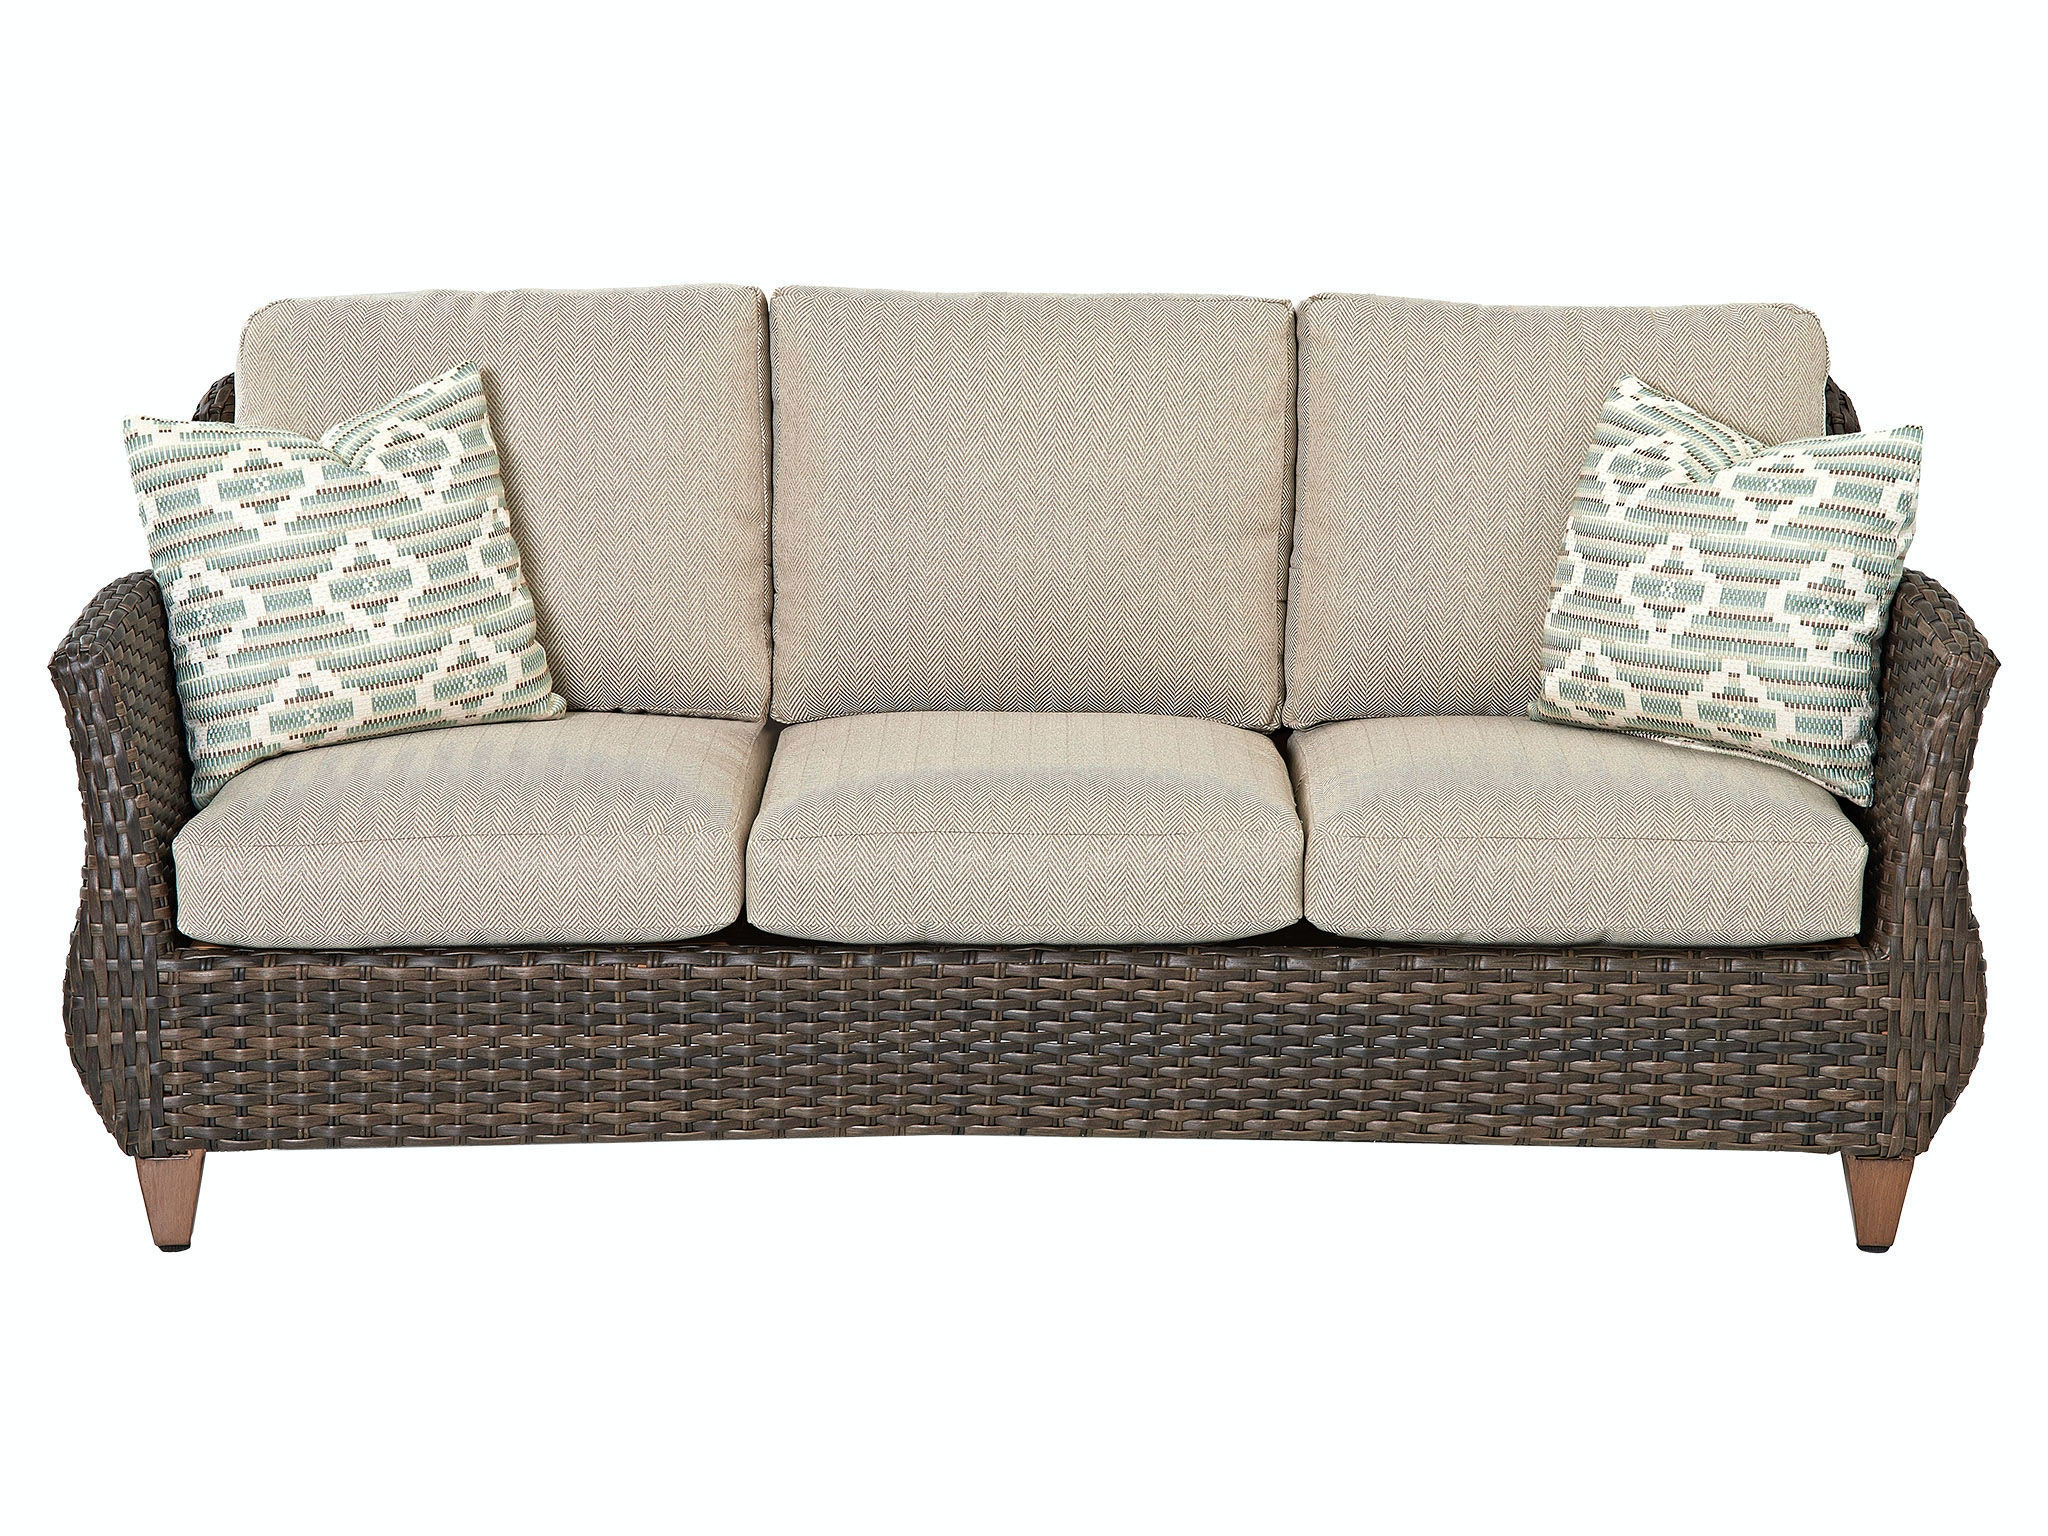 Charmant Klaussner Outdoor Sycamore Sofa W5100 S